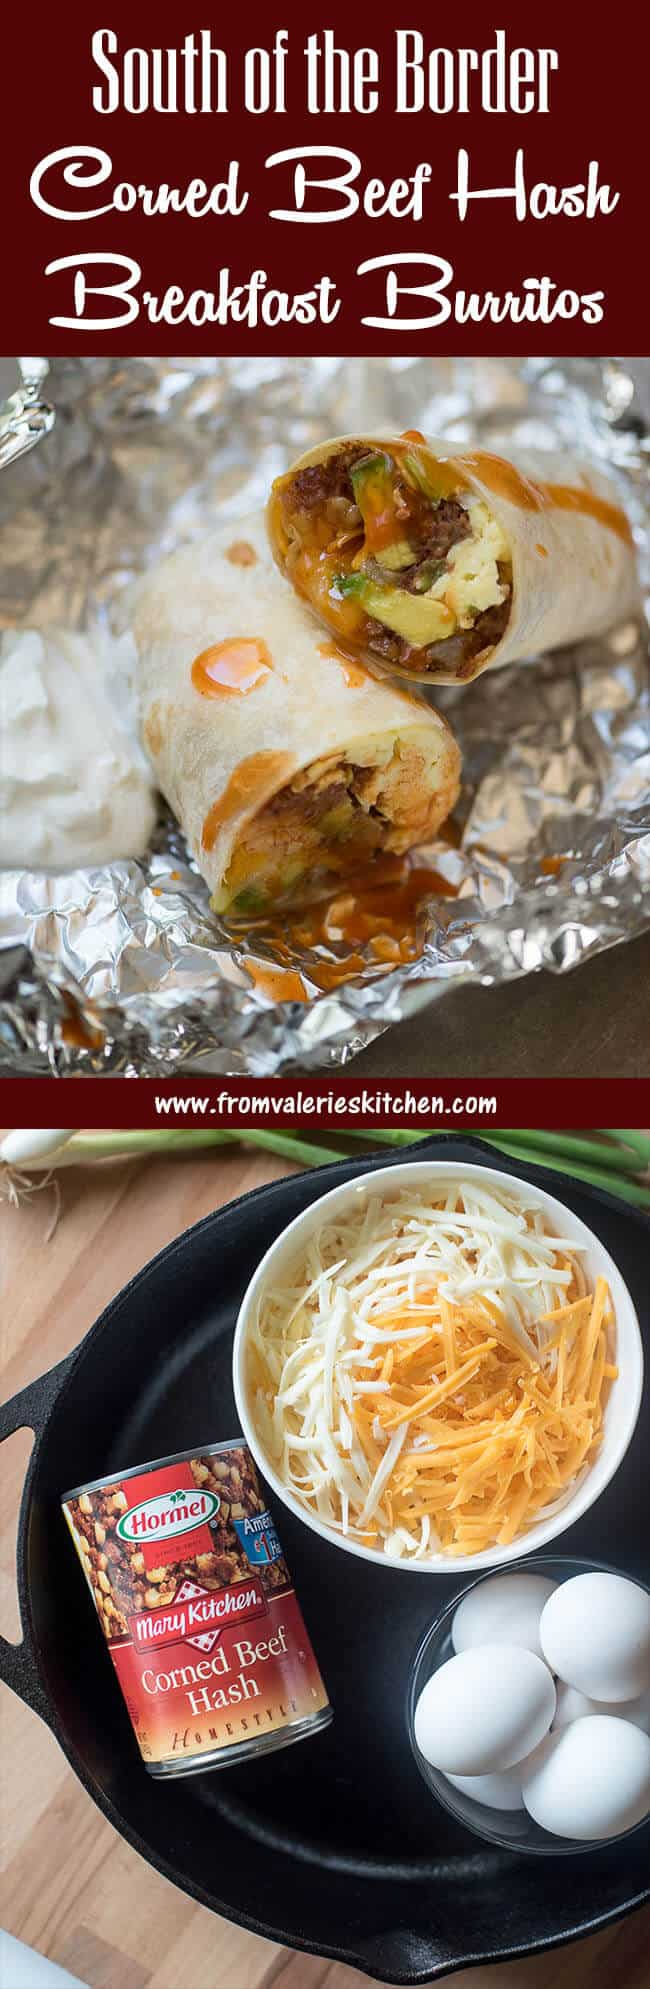 A two image vertical collage of South of the Border Corned Beef Hash Breakfast Burritos with text overlay.